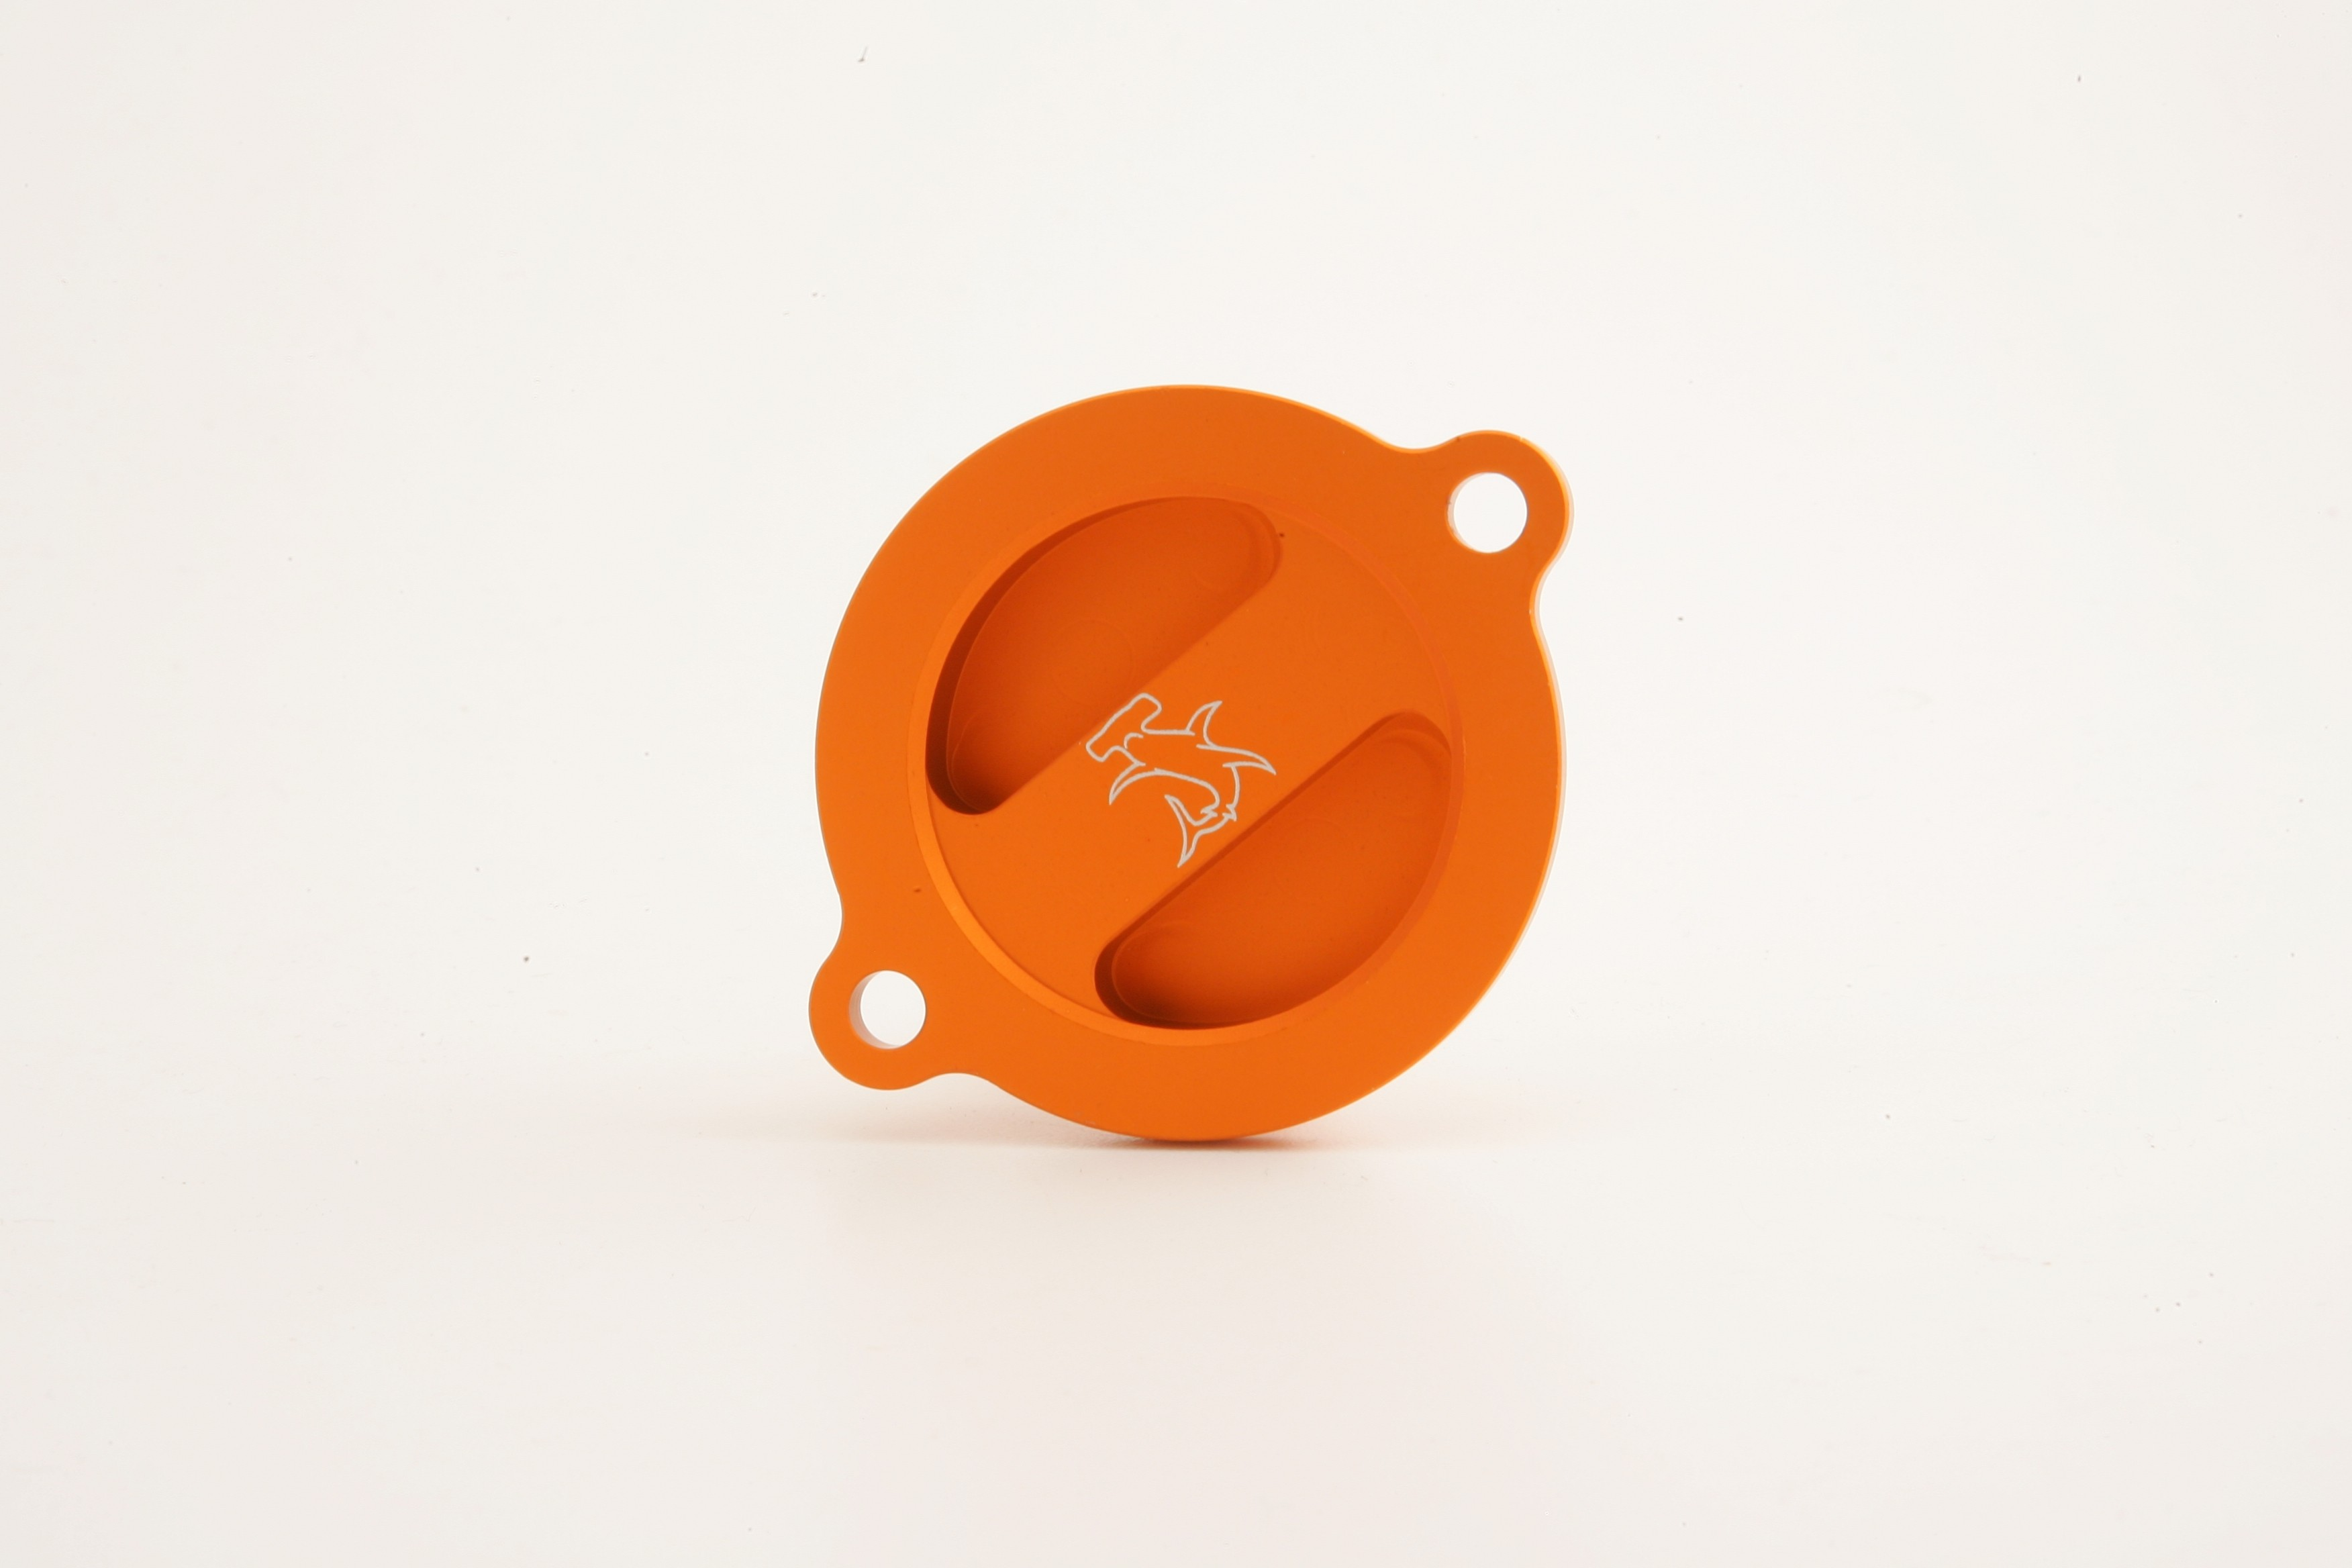 KTM/Husqvarna Type 1 Oil Filter Cover